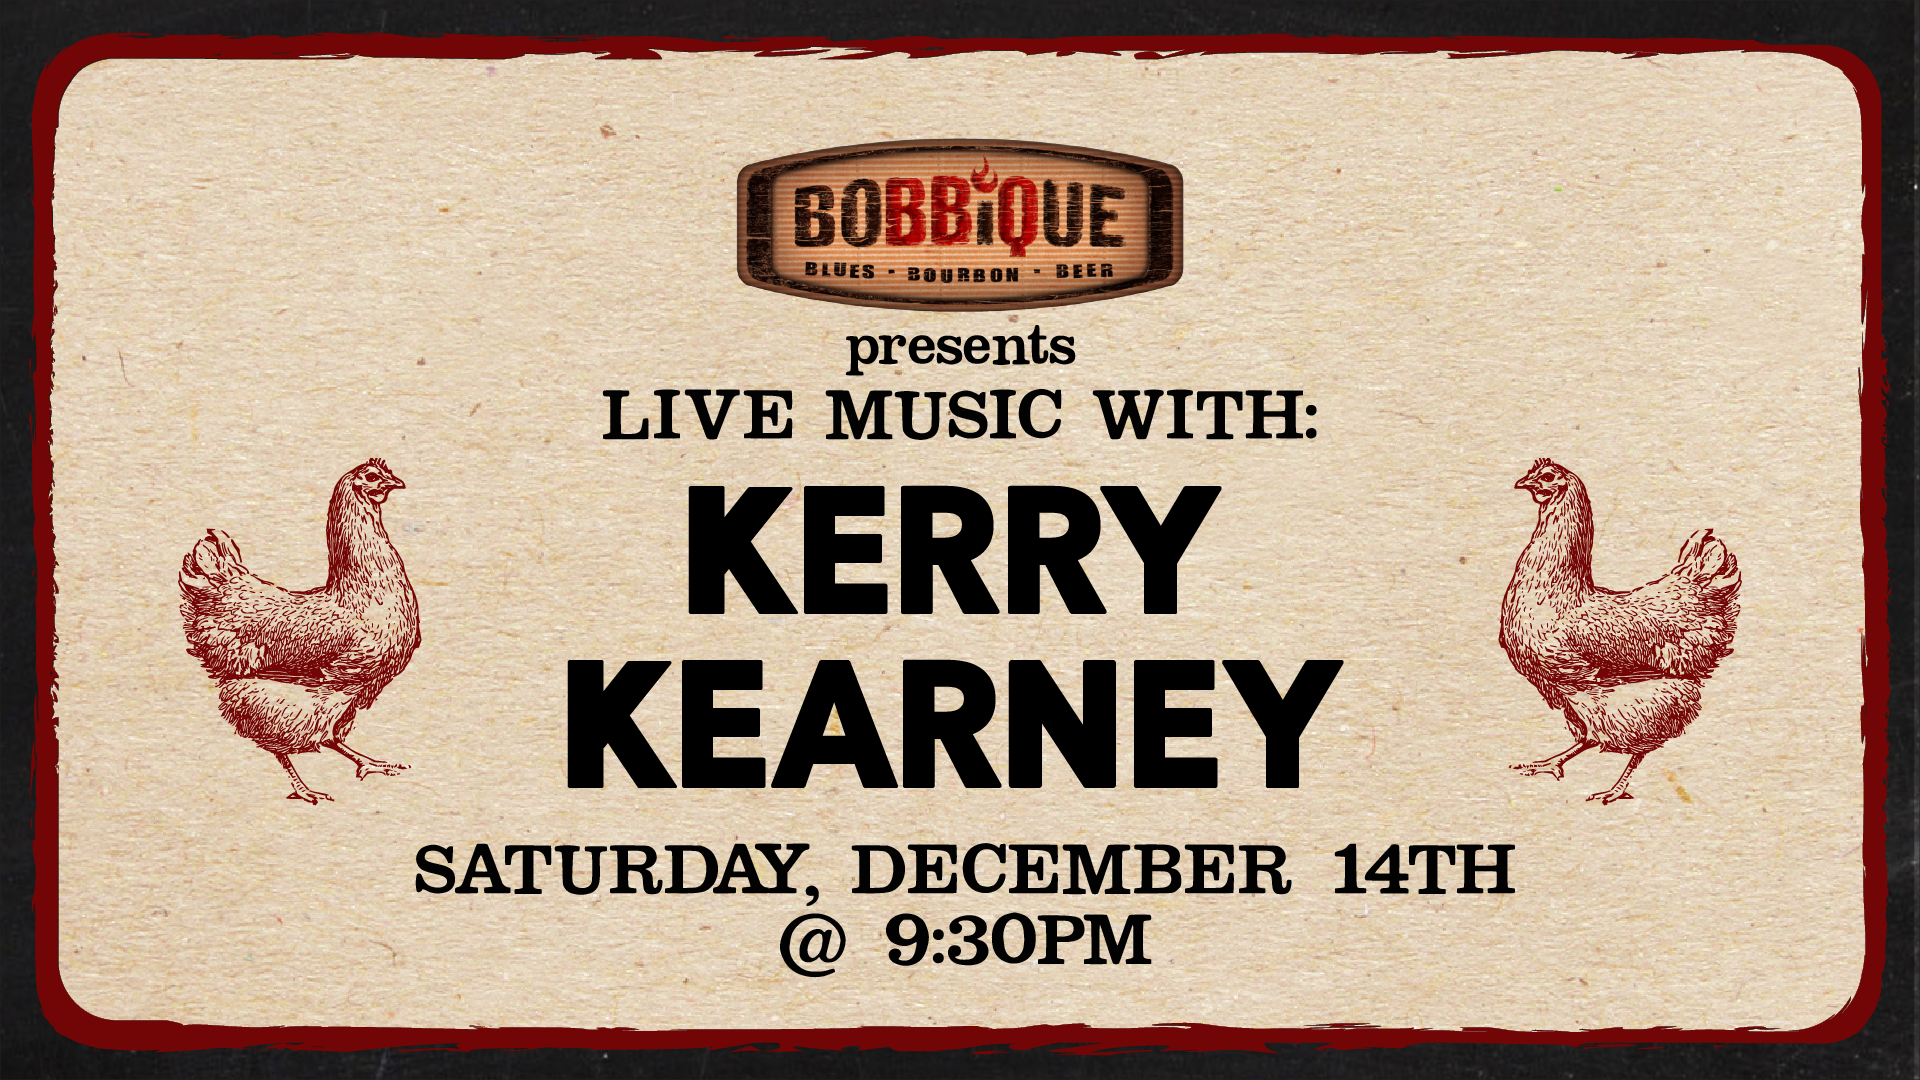 Live Music with Kerry Kearney